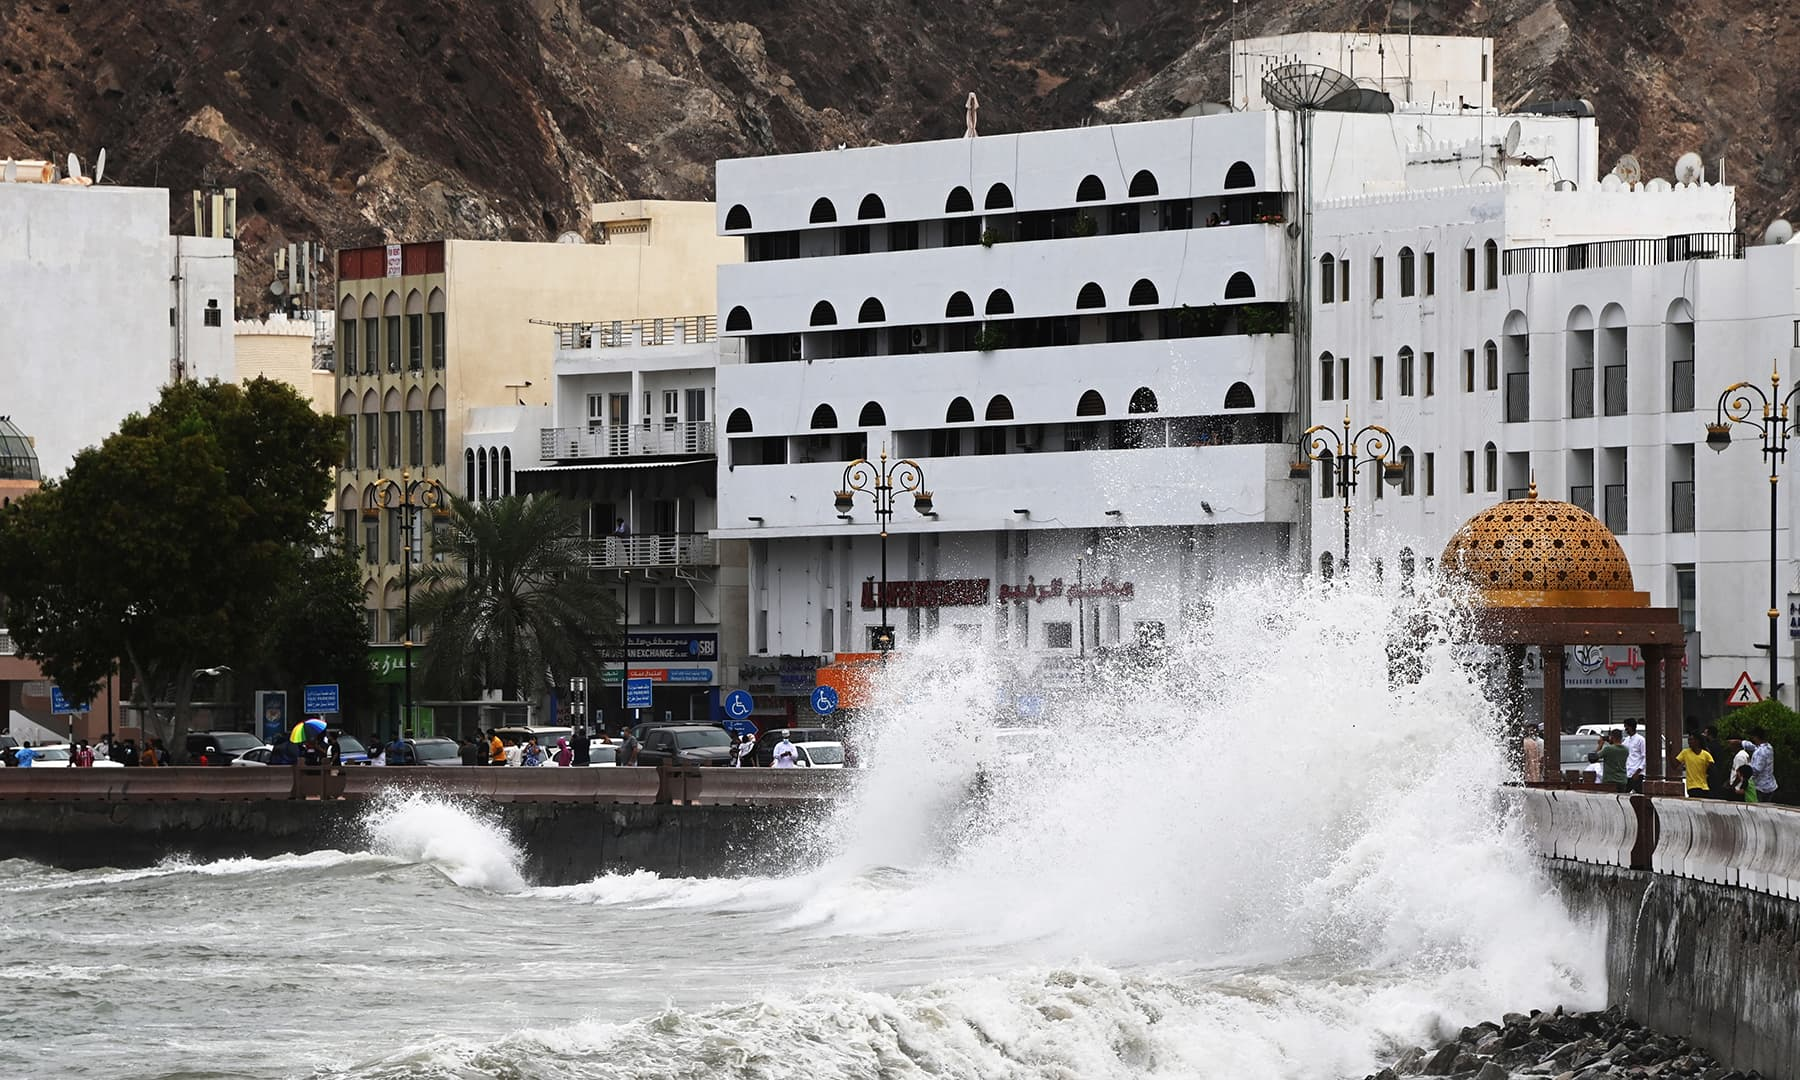 Strong waves hit the shore as Cyclone Shaheen makes landfall in Muscat, Oman, October 2. — Reuters